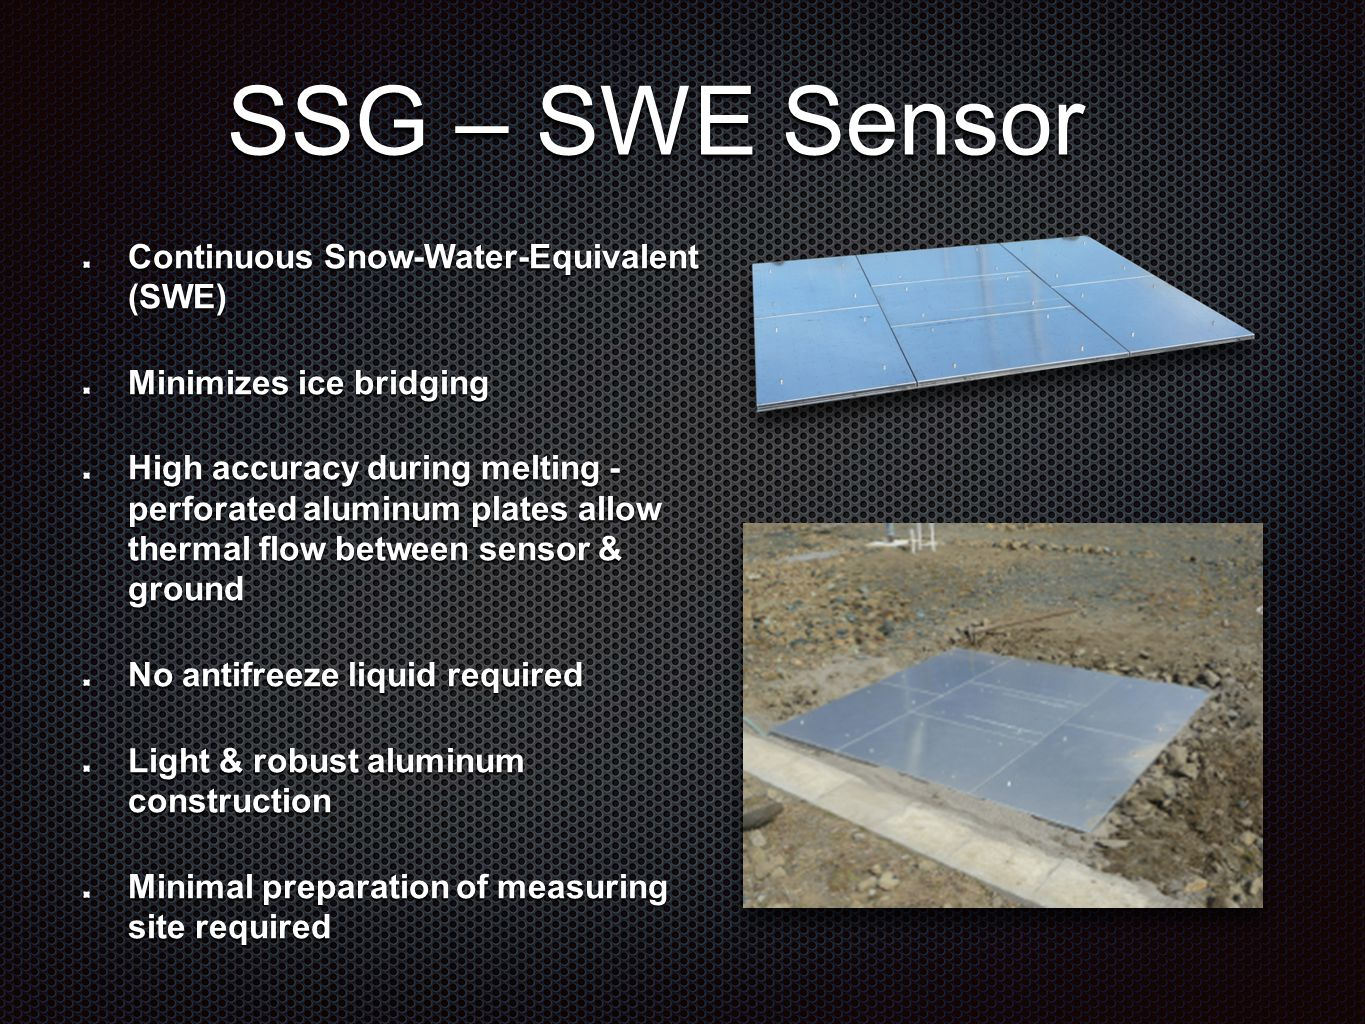 SSG – SWE Sensor Continuous Snow-Water-Equivalent (SWE) Minimizes ice bridging High accuracy during melting - perforated aluminum plates allow thermal flow between sensor & ground No antifreeze liquid required Light & robust aluminum construction Minimal preparation of measuring site required